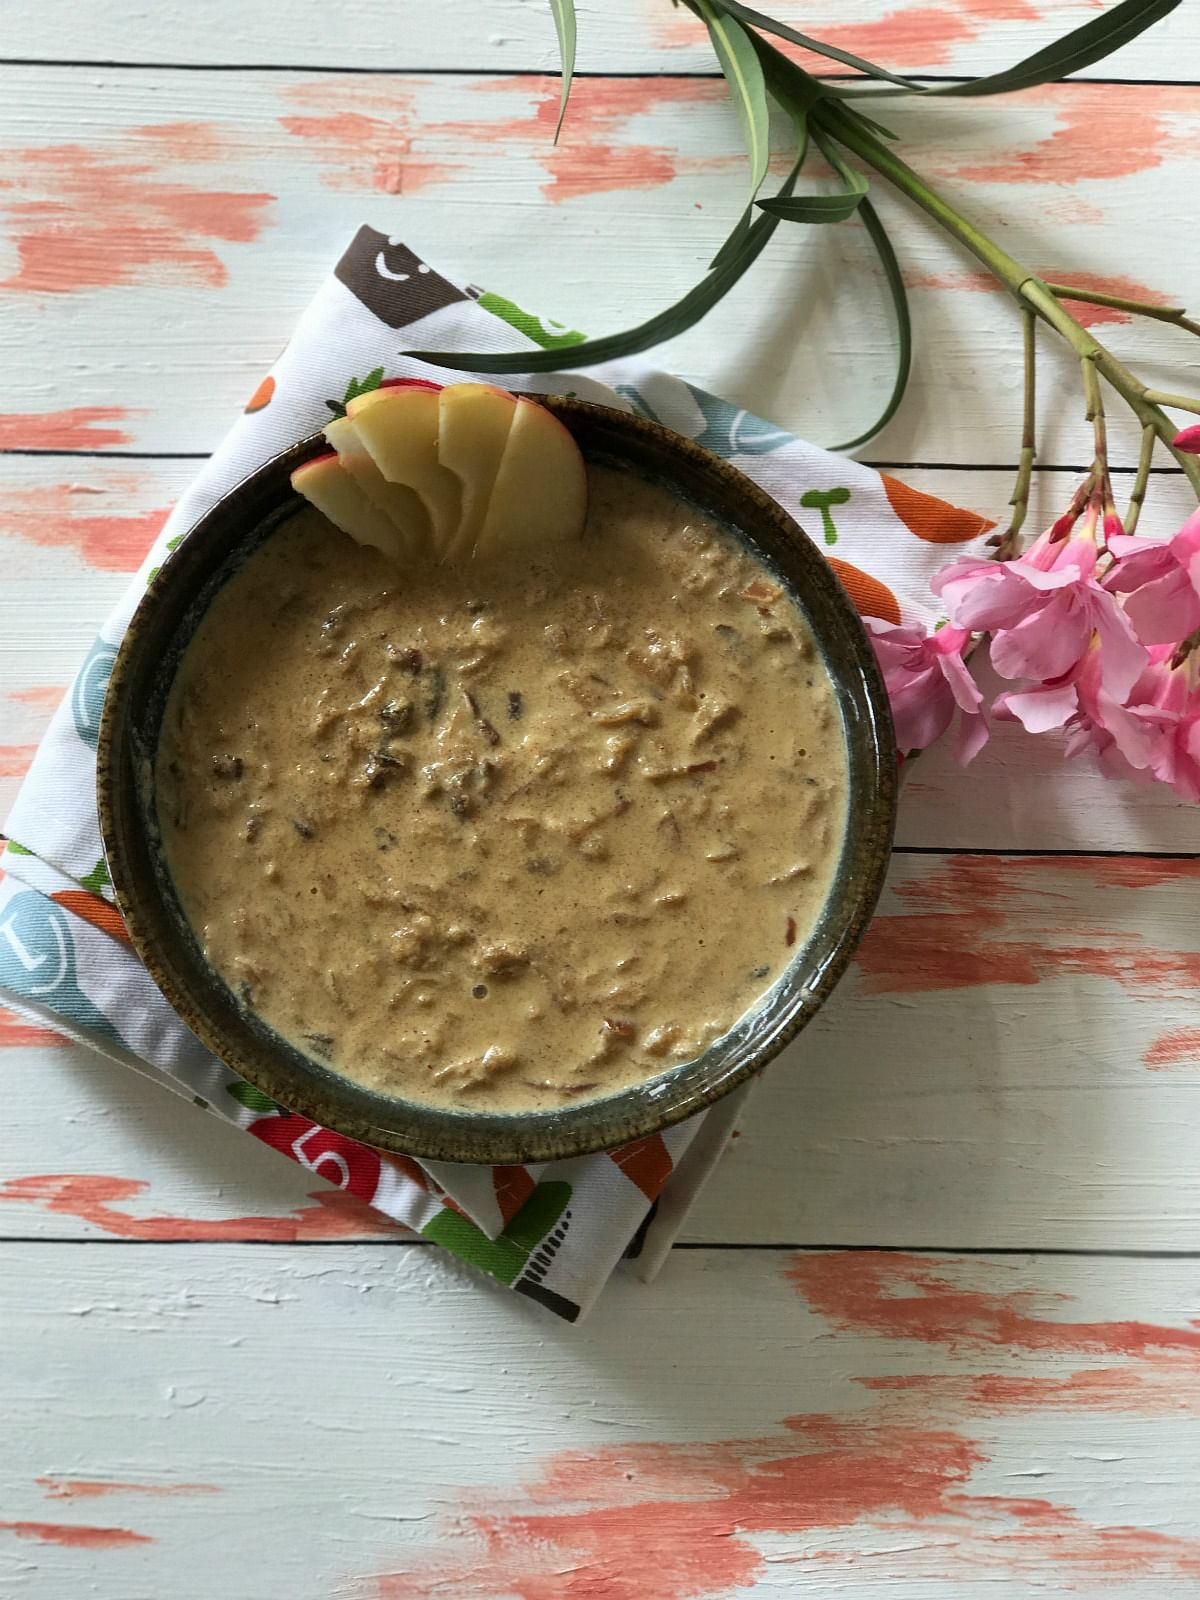 The  kheer gets its sweetness from apples and dates.